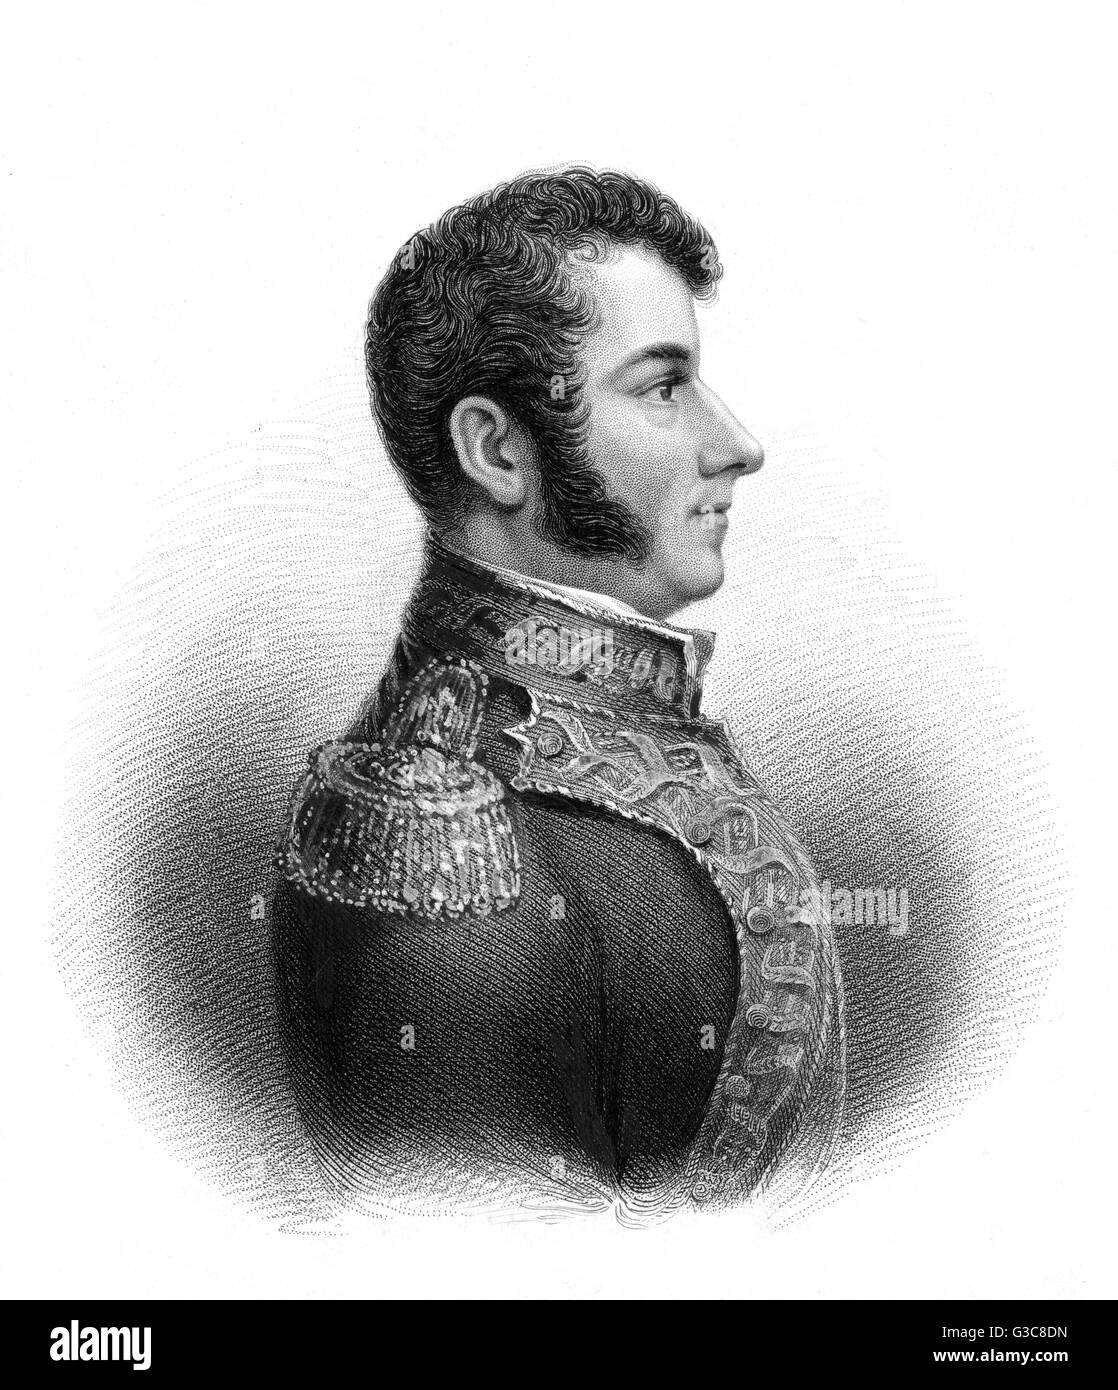 GUADALUPE VICTORIA (Manuel Felix Fernandez) Mexican soldier and statesman        Date: 1789 - 1843 - Stock Image